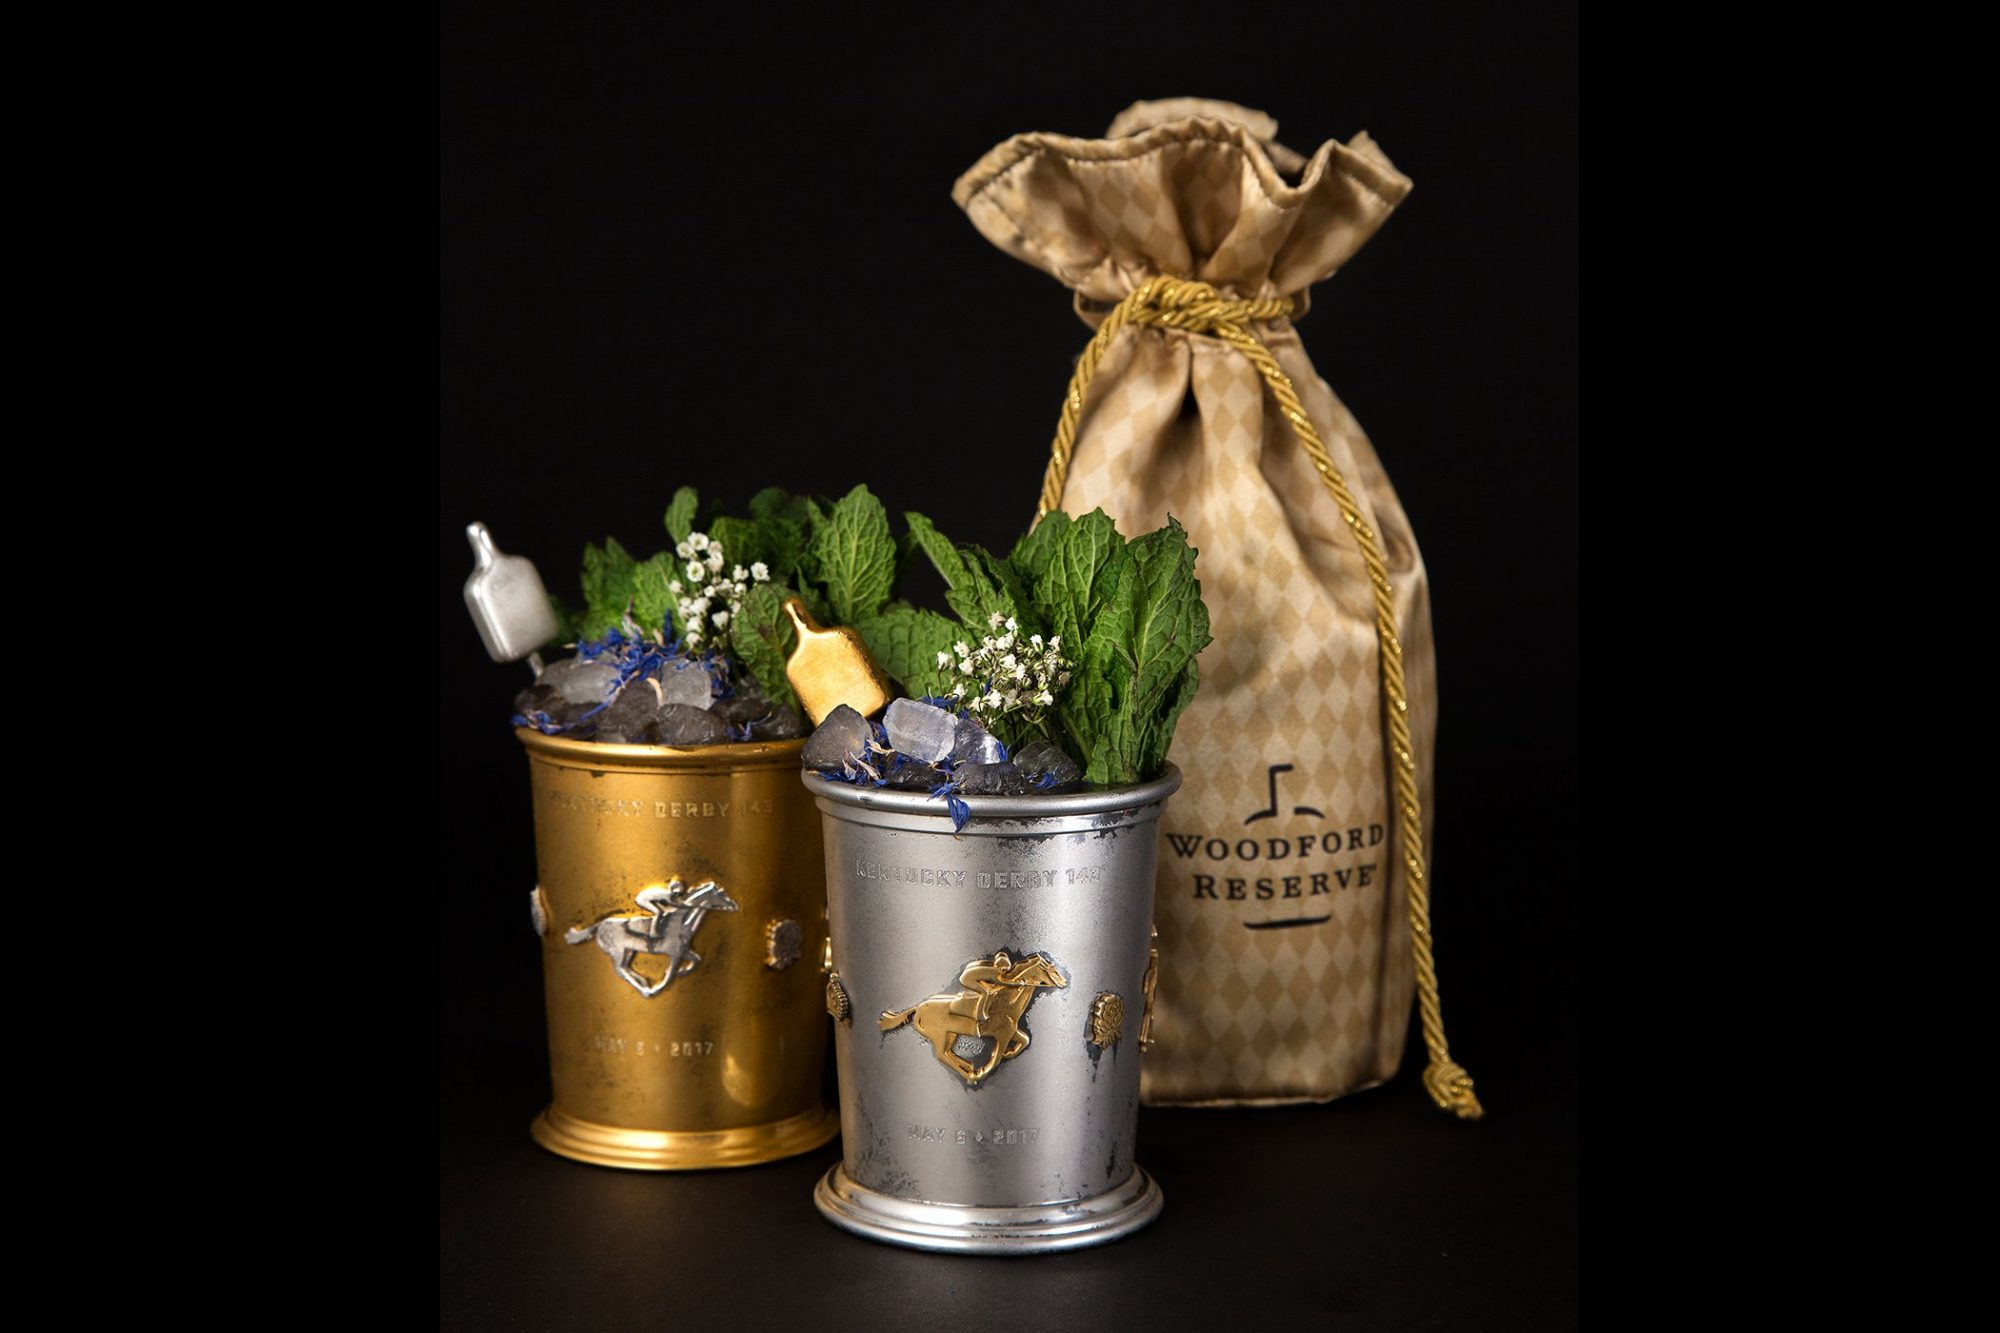 170430-mint-julep-woodford-reserve-kentucky-derby